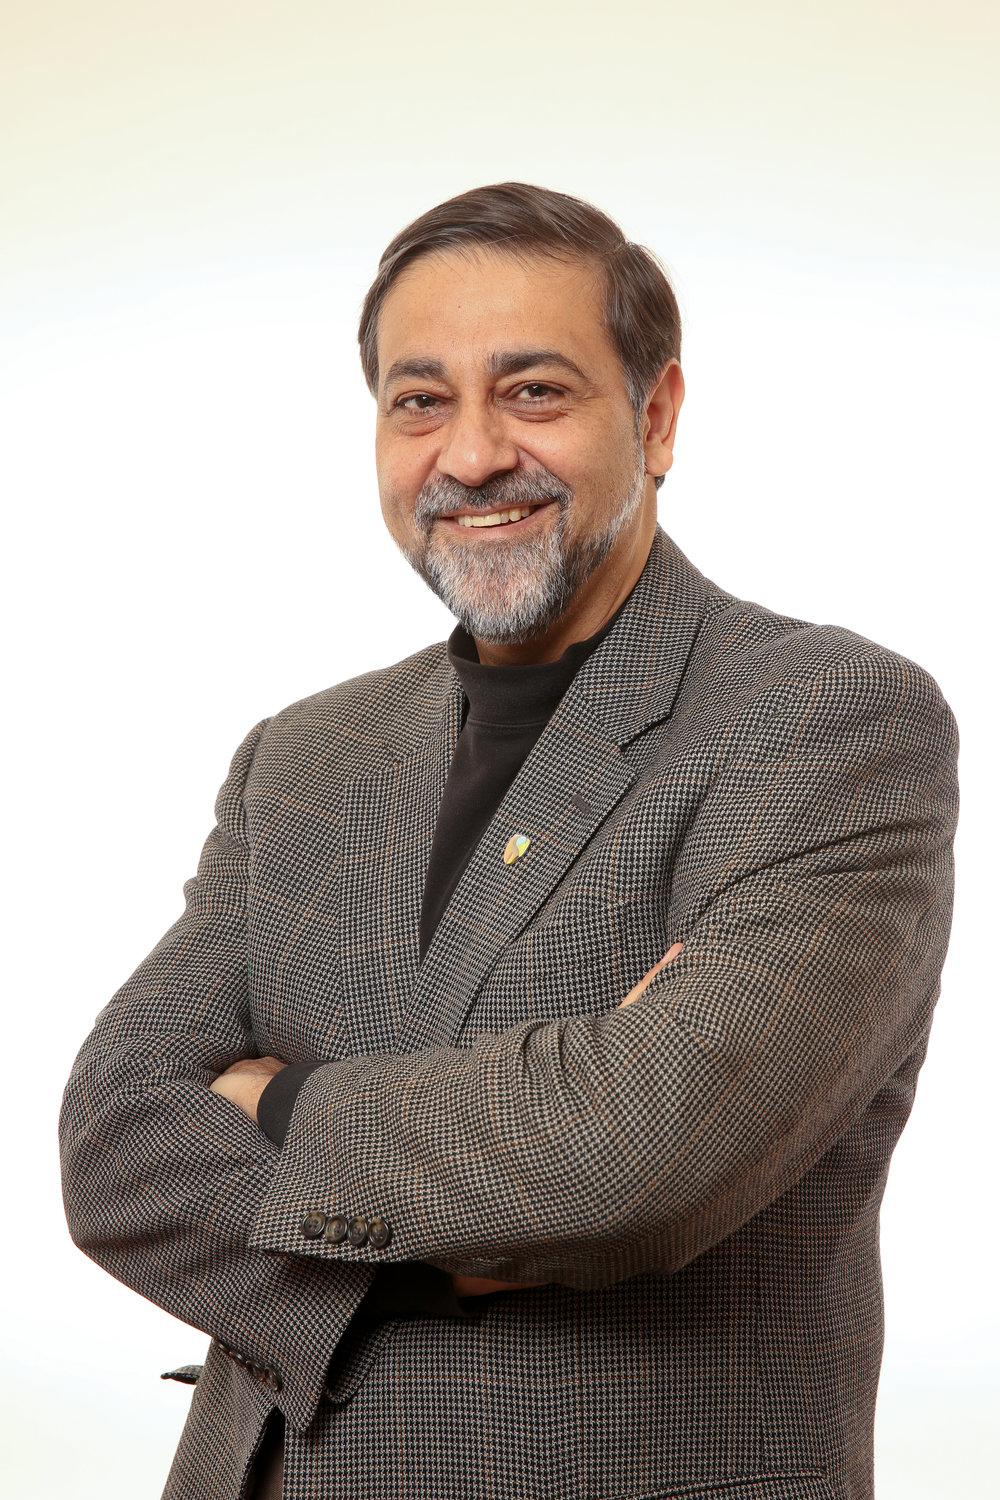 VIVEK WADHWA - DISTINGUISHED FELLOW AT CARNEGIE MELLON UNIVERSITY